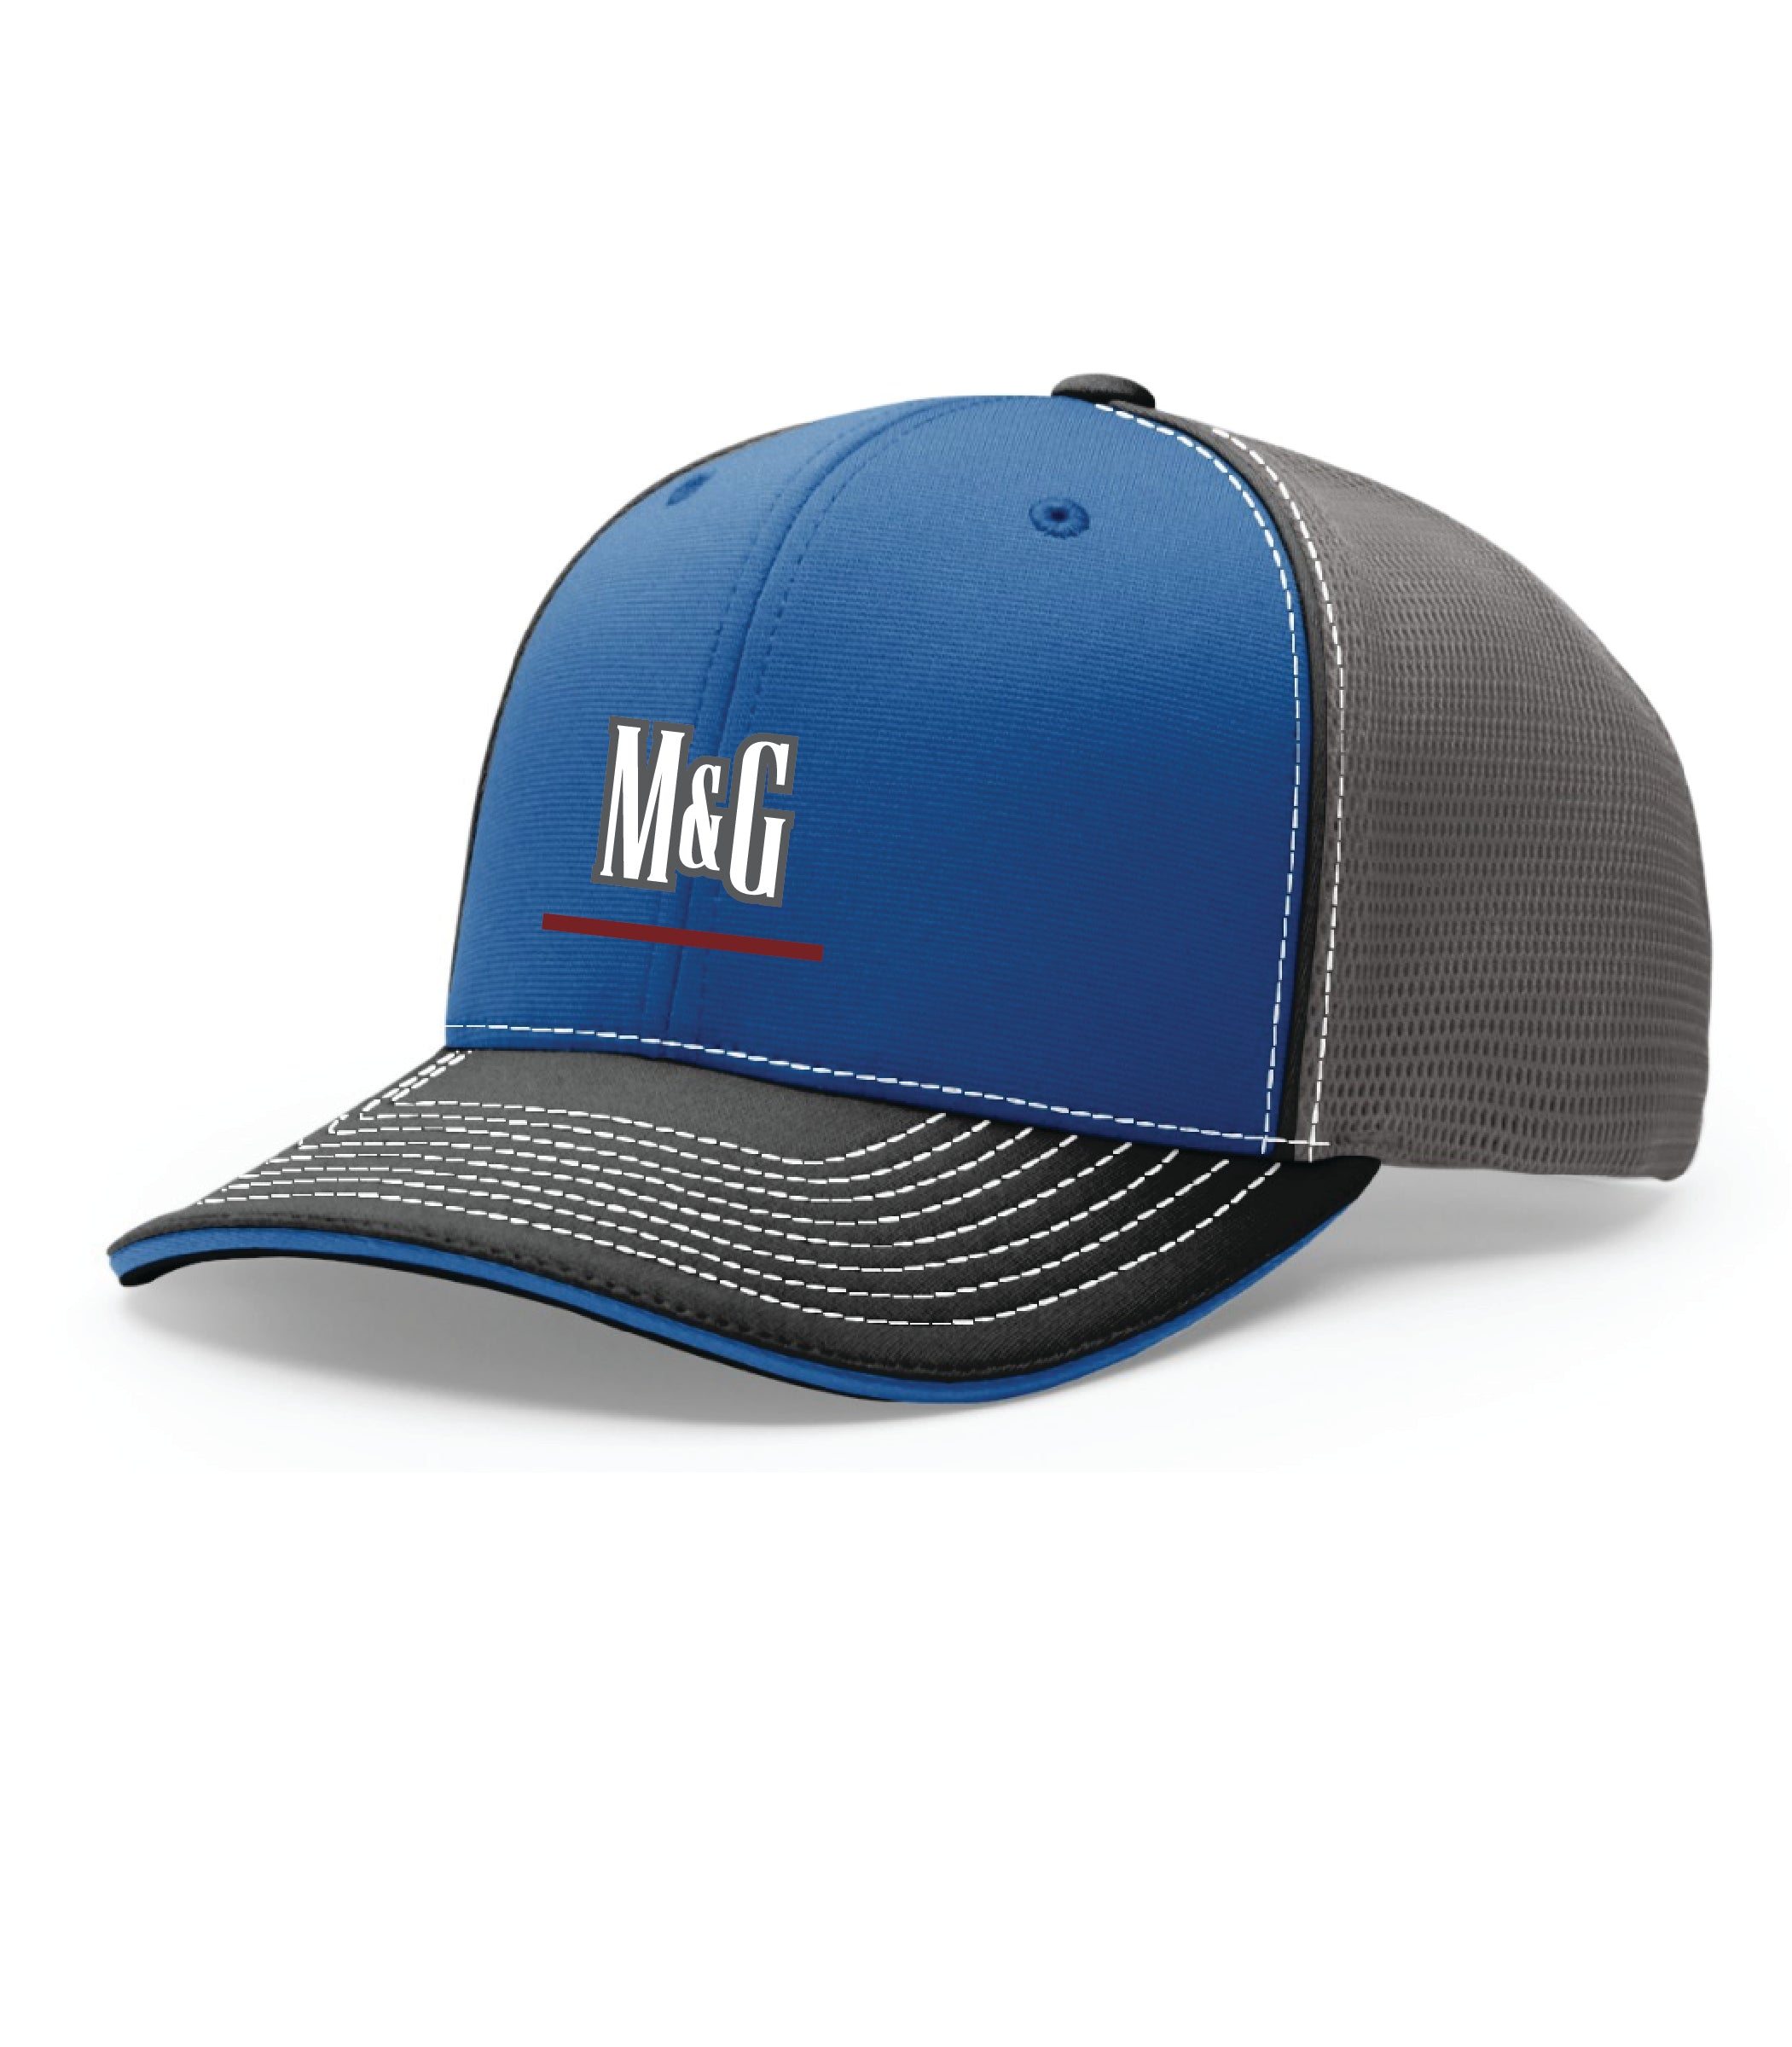 79a7c6b20d M G - Richardson FlexFit Hat – J.Carroll